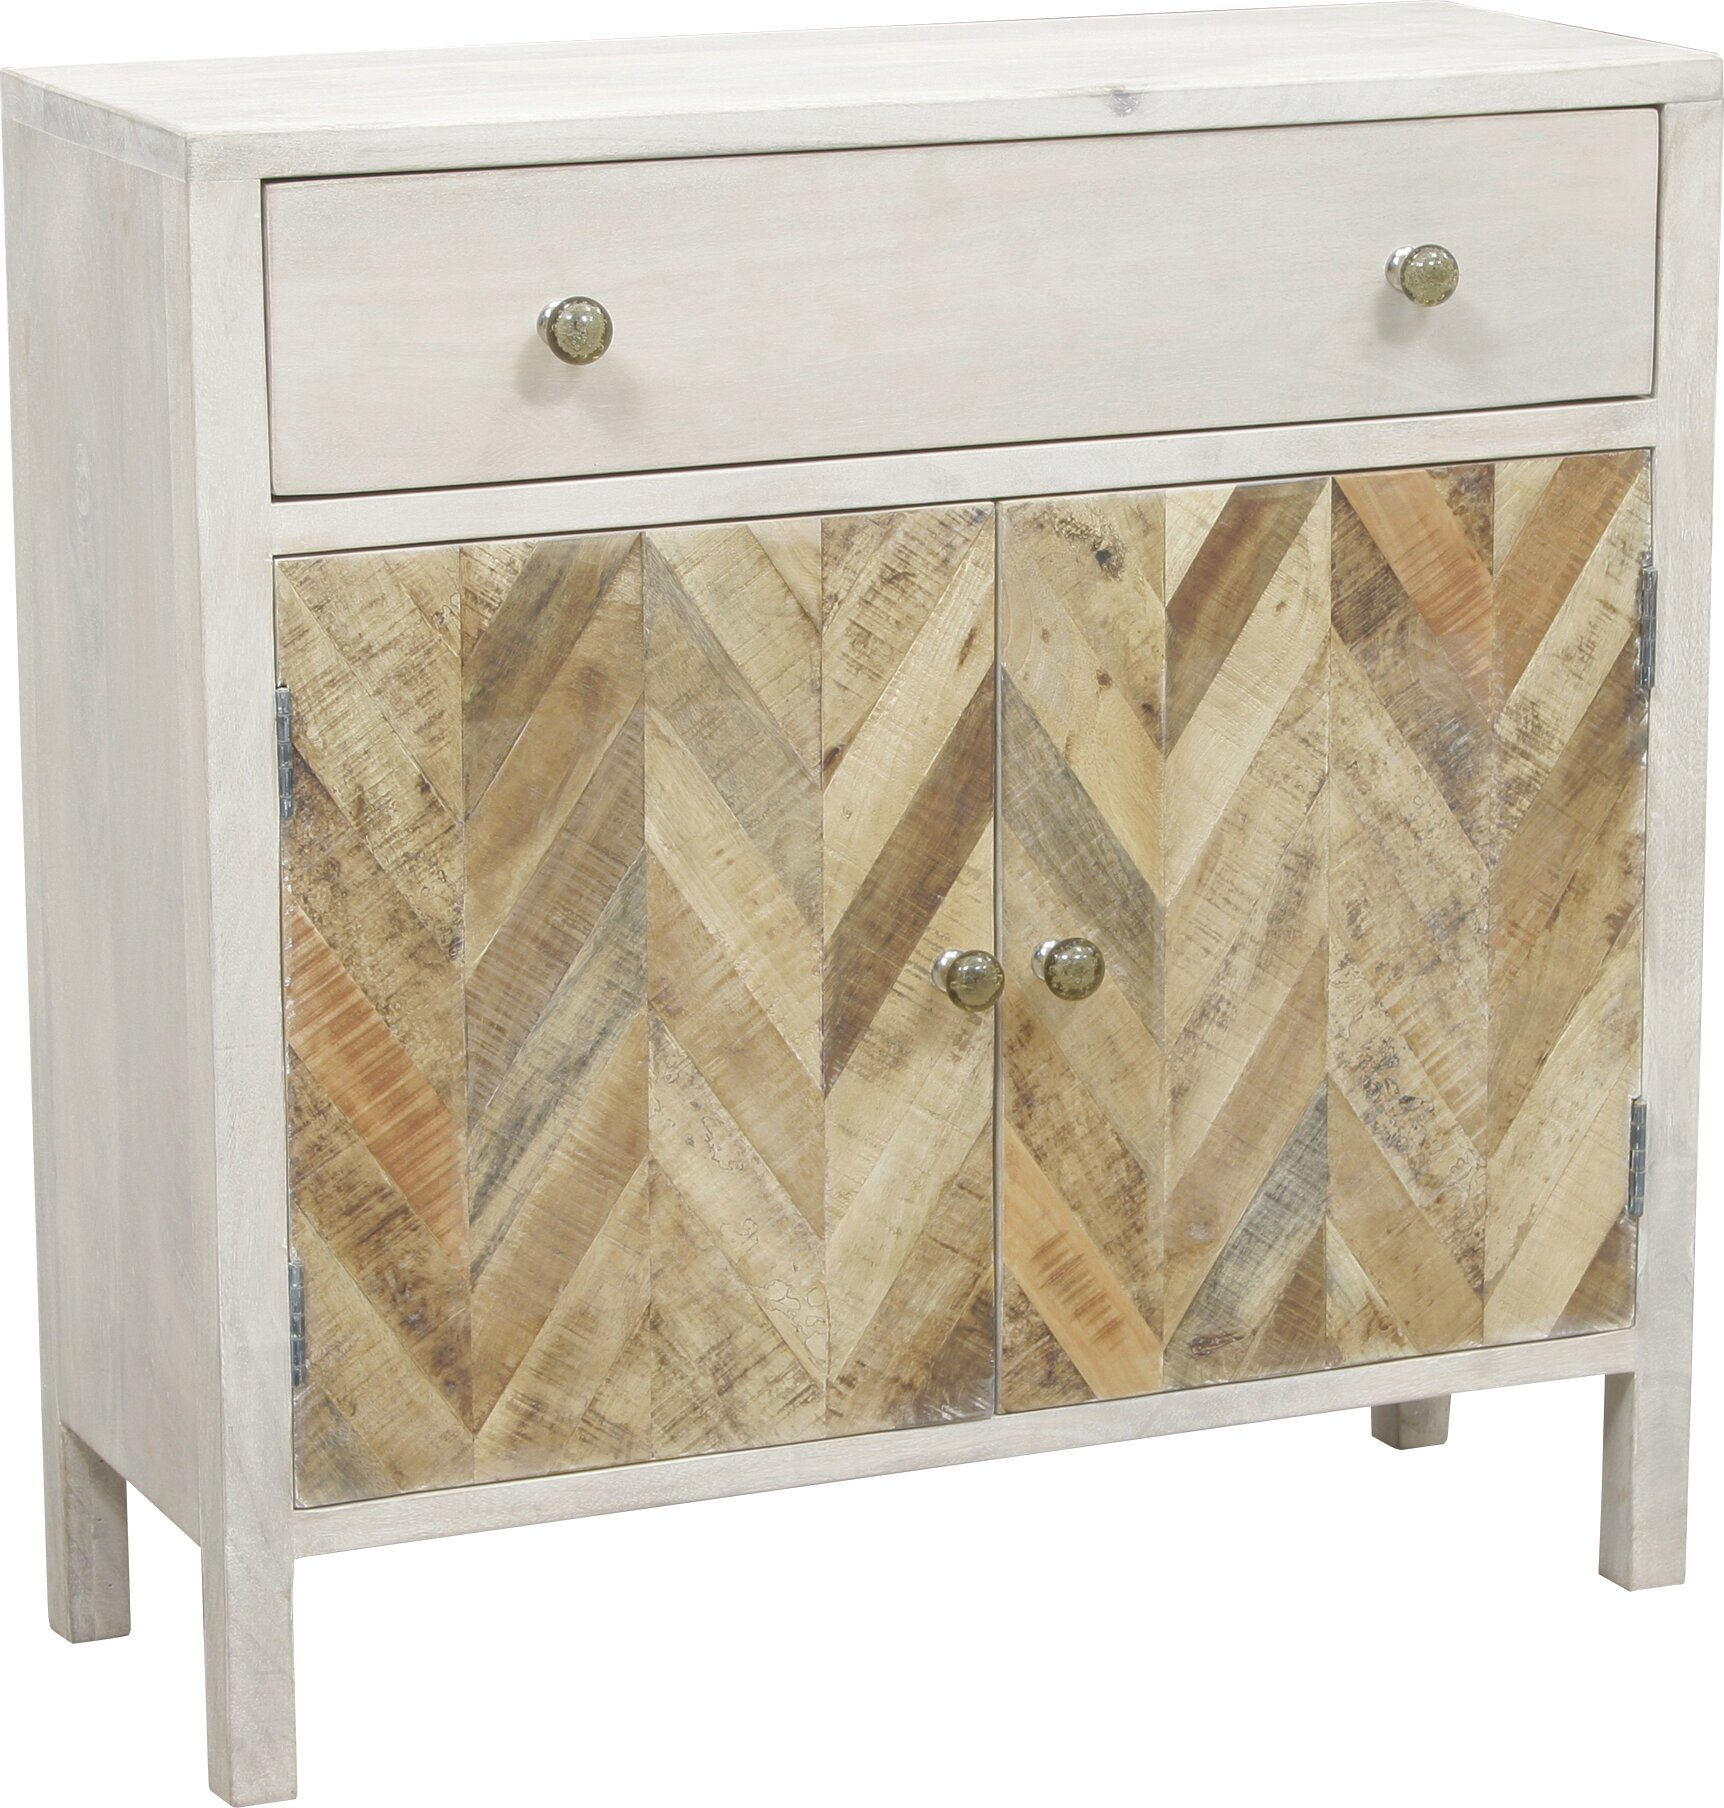 August Grove Islemade 1 Drawer 2 Door Accent Cabinet | Wayfair